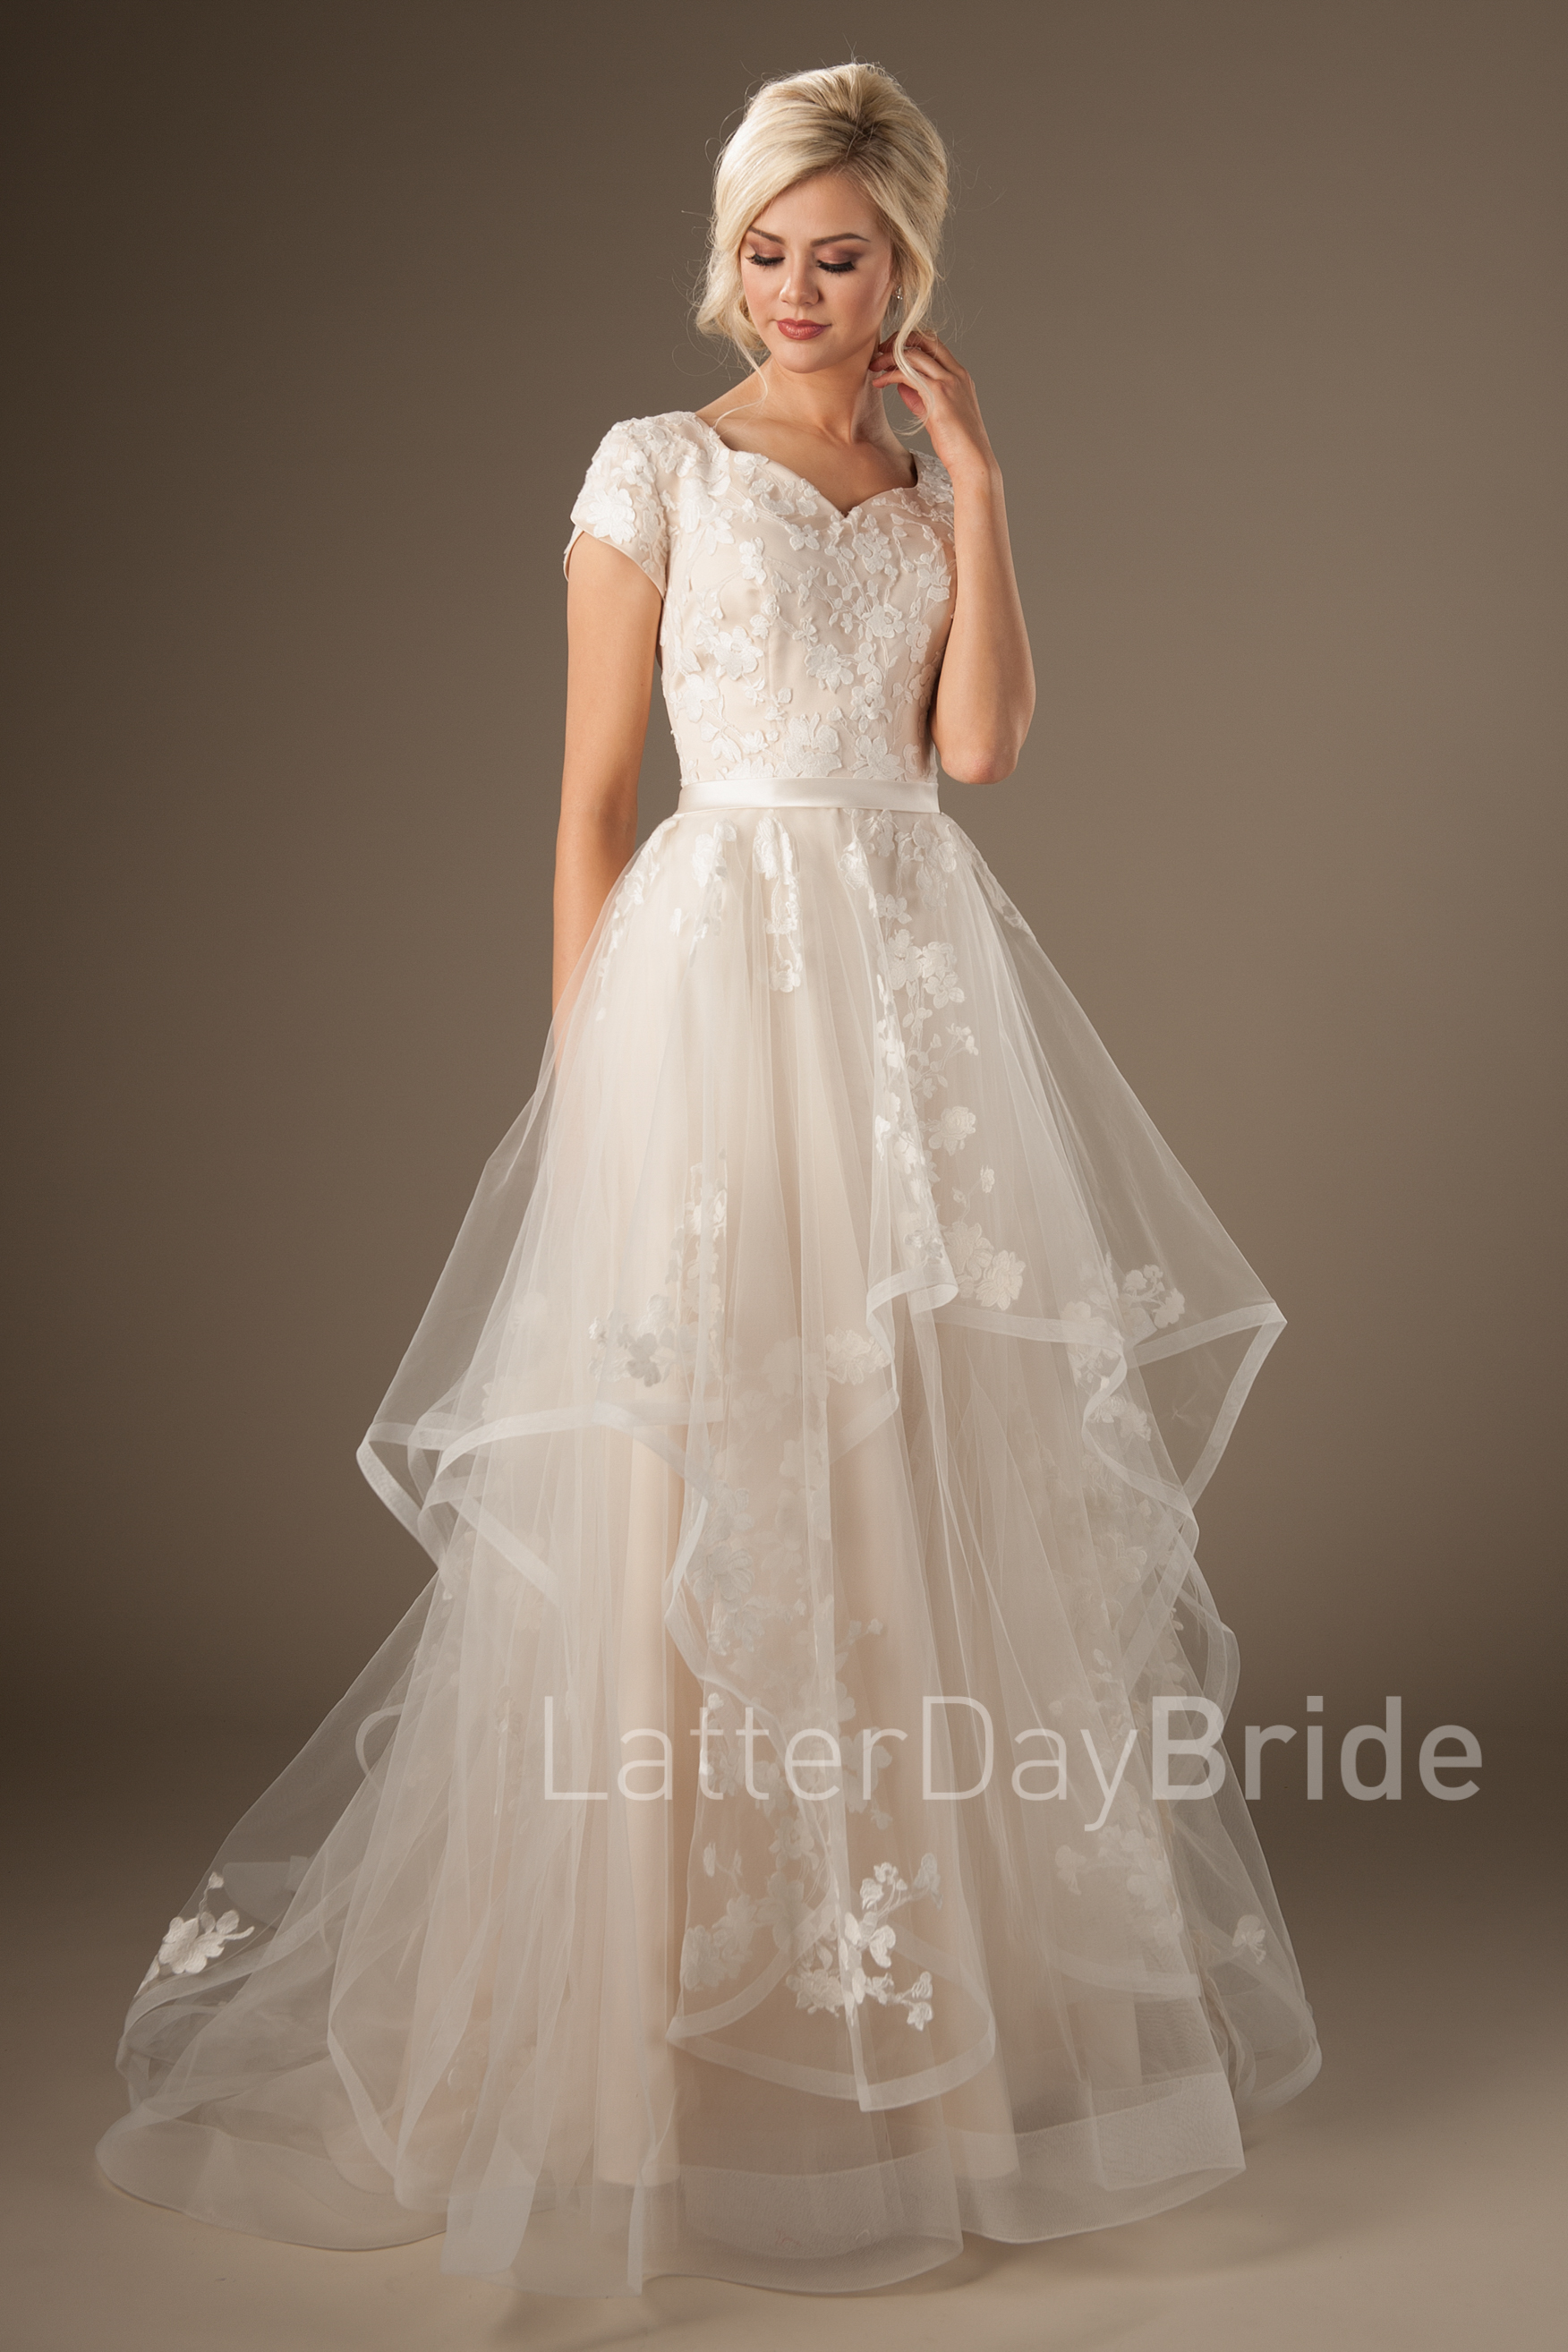 modest wedding dresses with layered horsehair skirt and floral lace, the  claralise at latterdaybride TZLSHLL